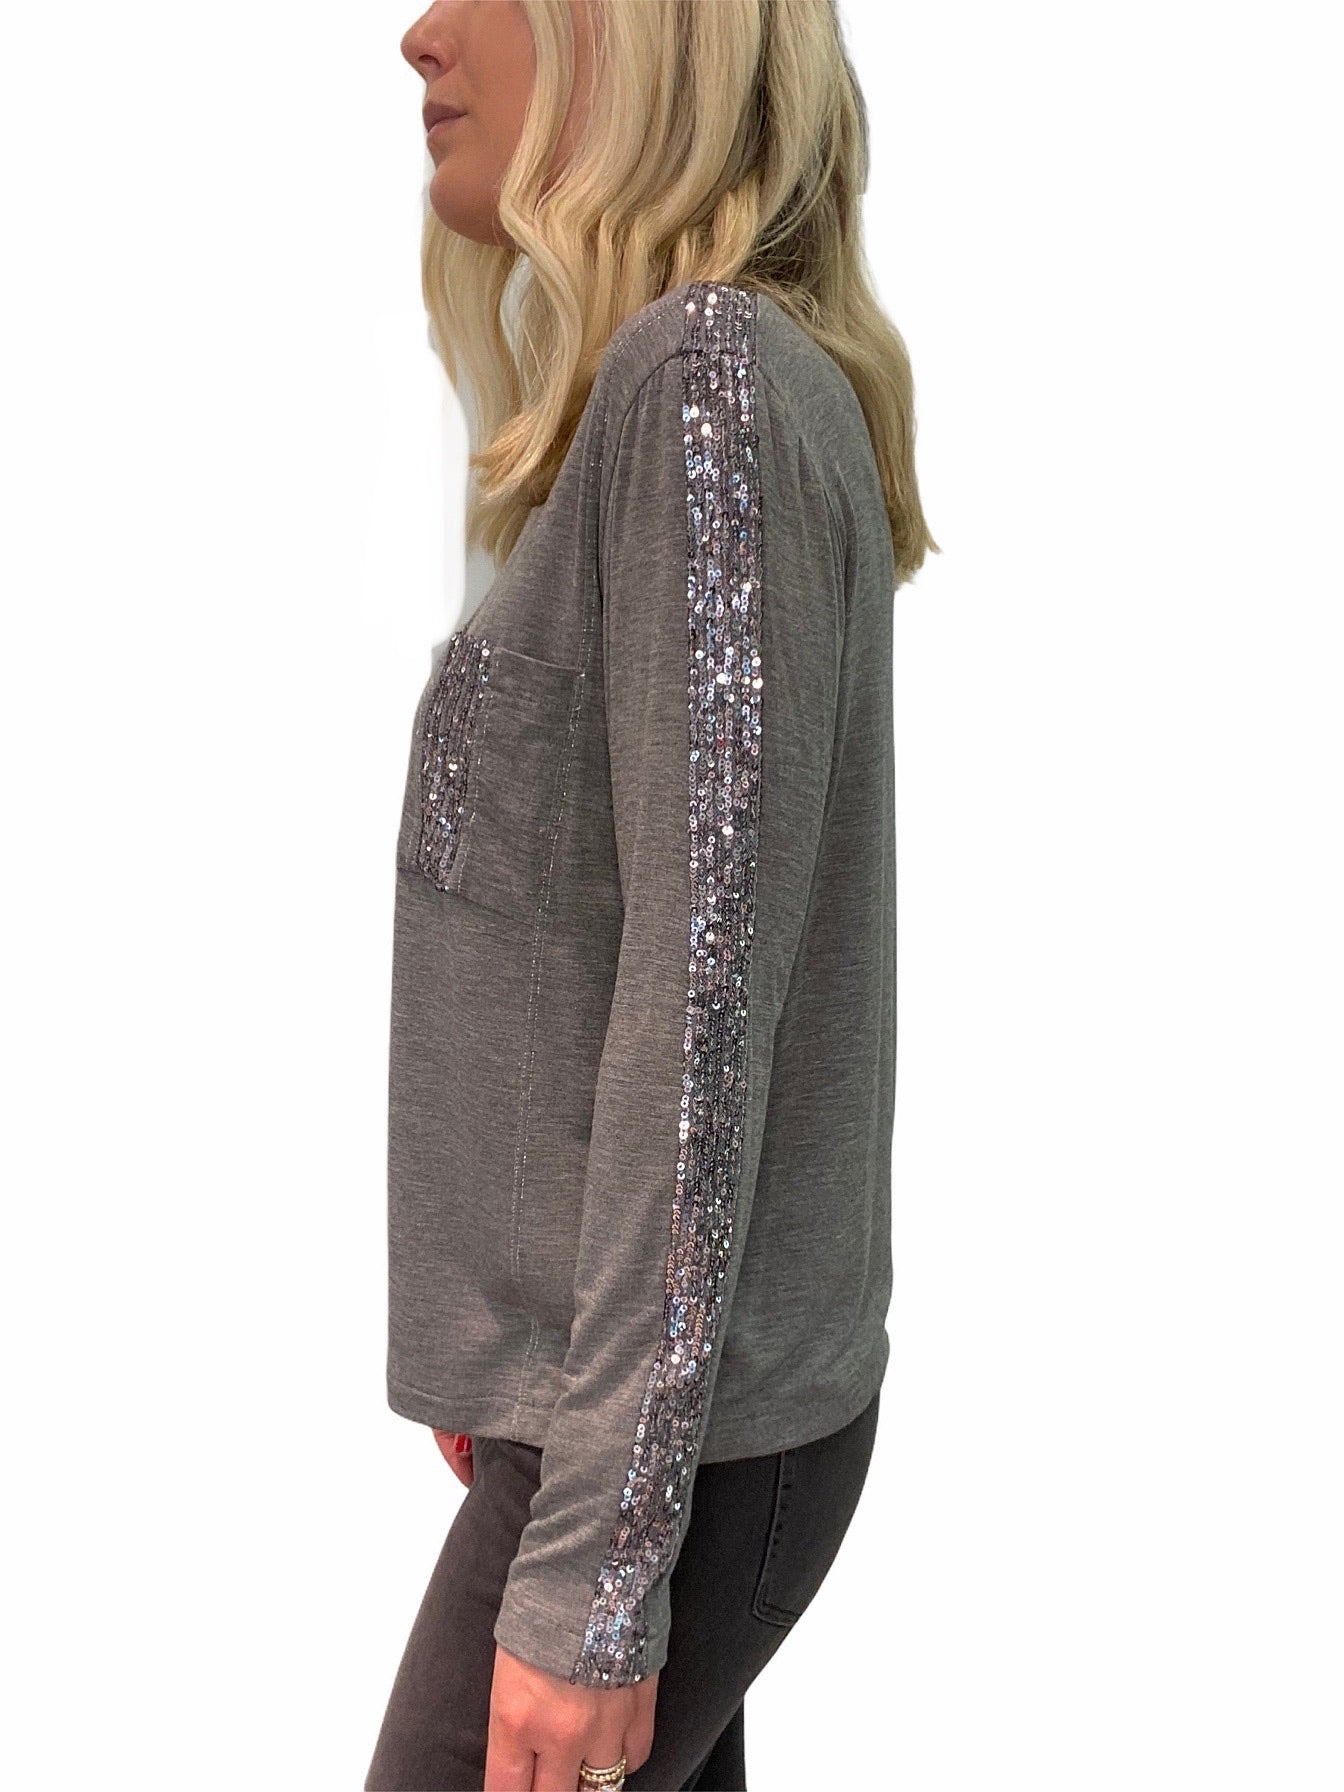 Sequin Long Sleeve Top with Pocket